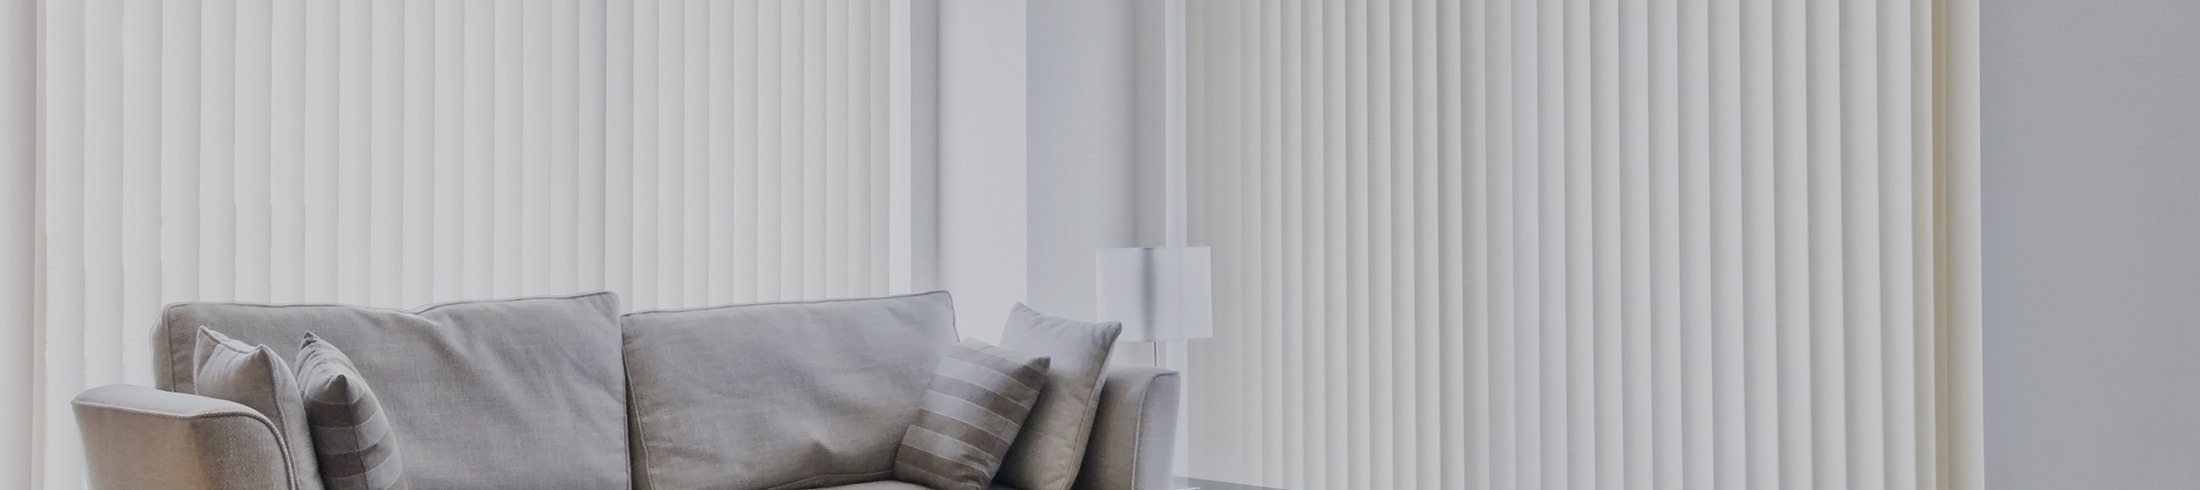 indoor vertical blinds 02